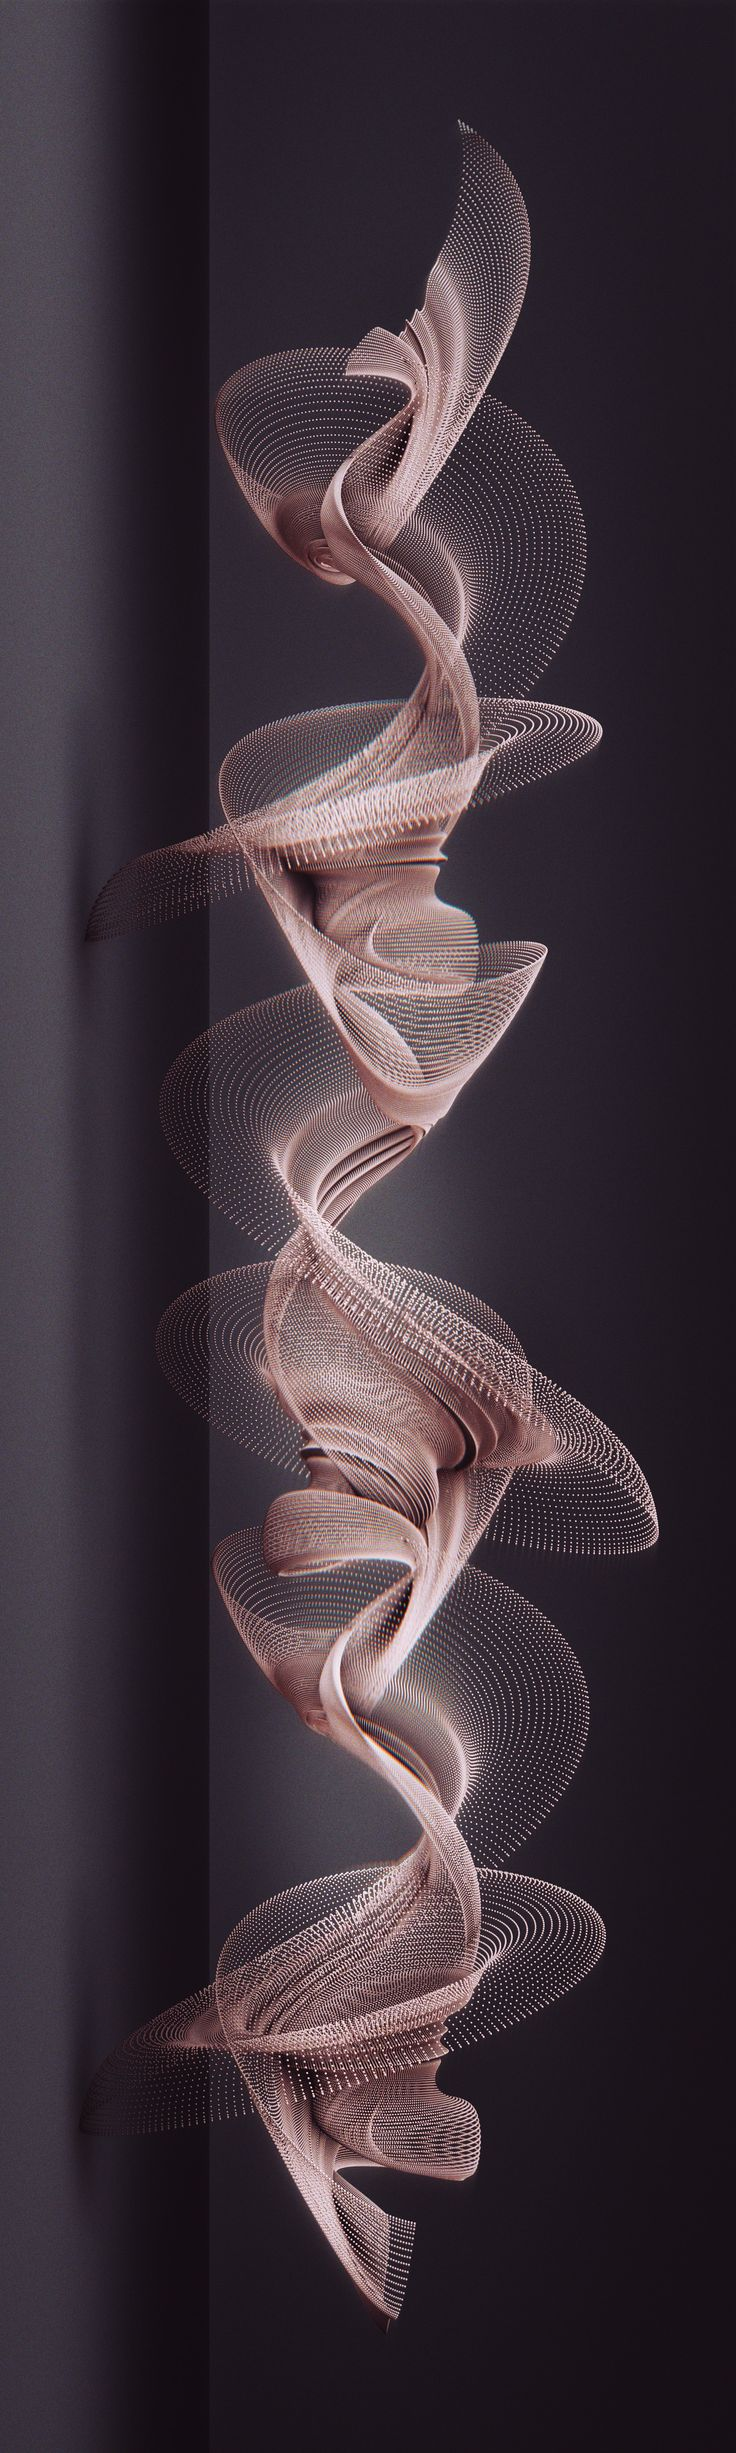 Can Buyukberber.  Unfold: Preliminary Study Toward 3D Printed Media Installations Digital Sculpture Studies July 2014 - Ongoing